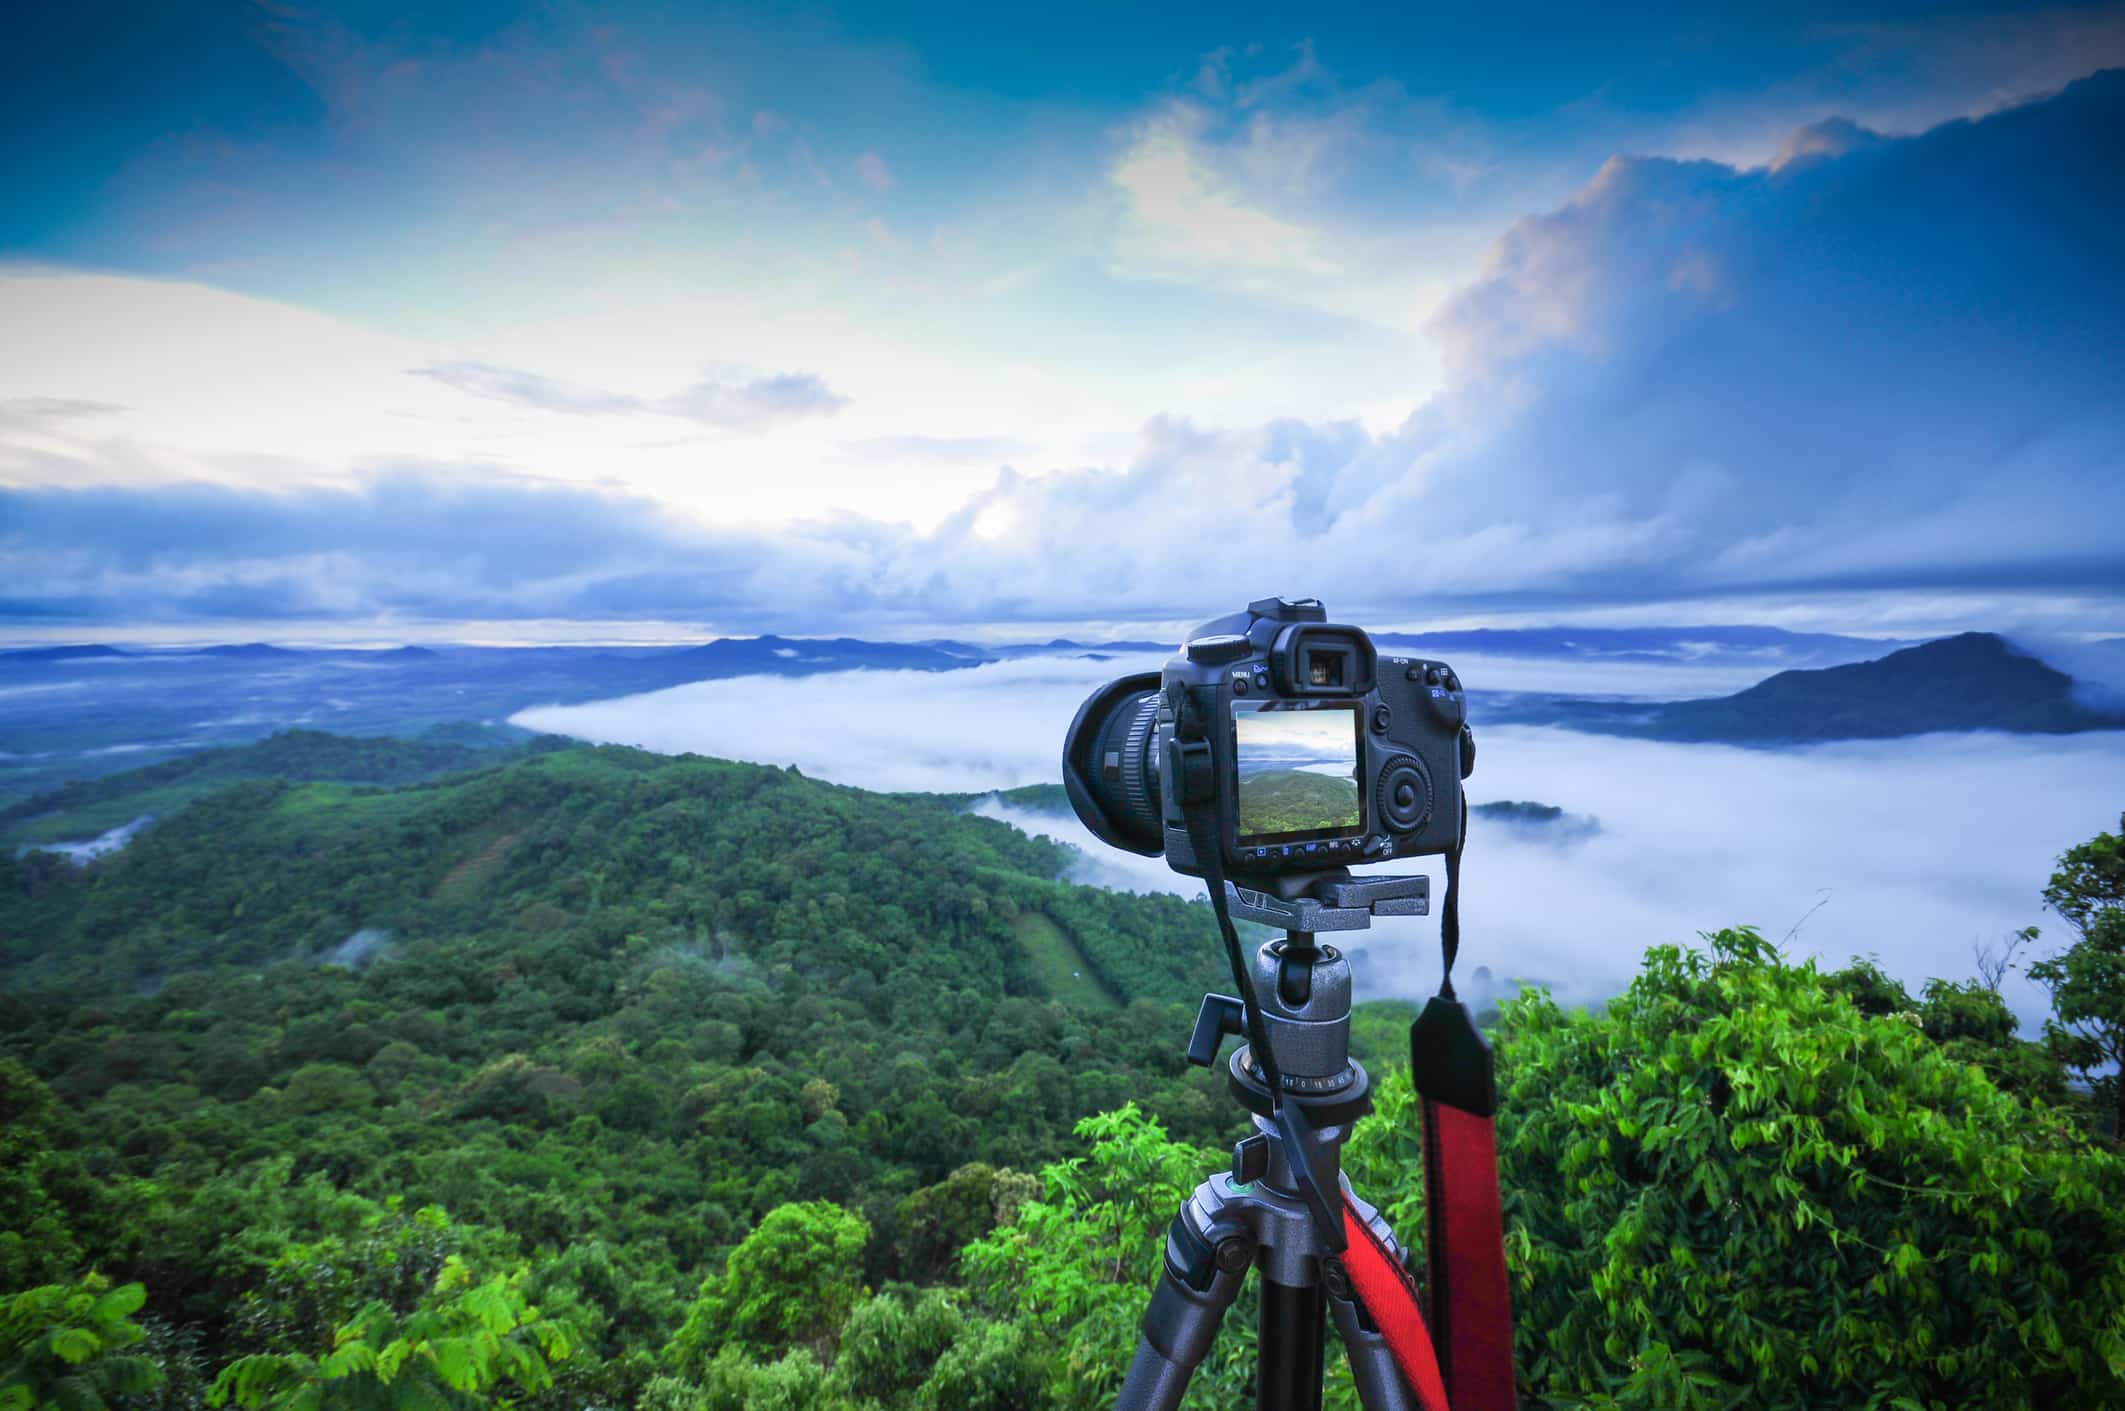 Photographing Landscapes